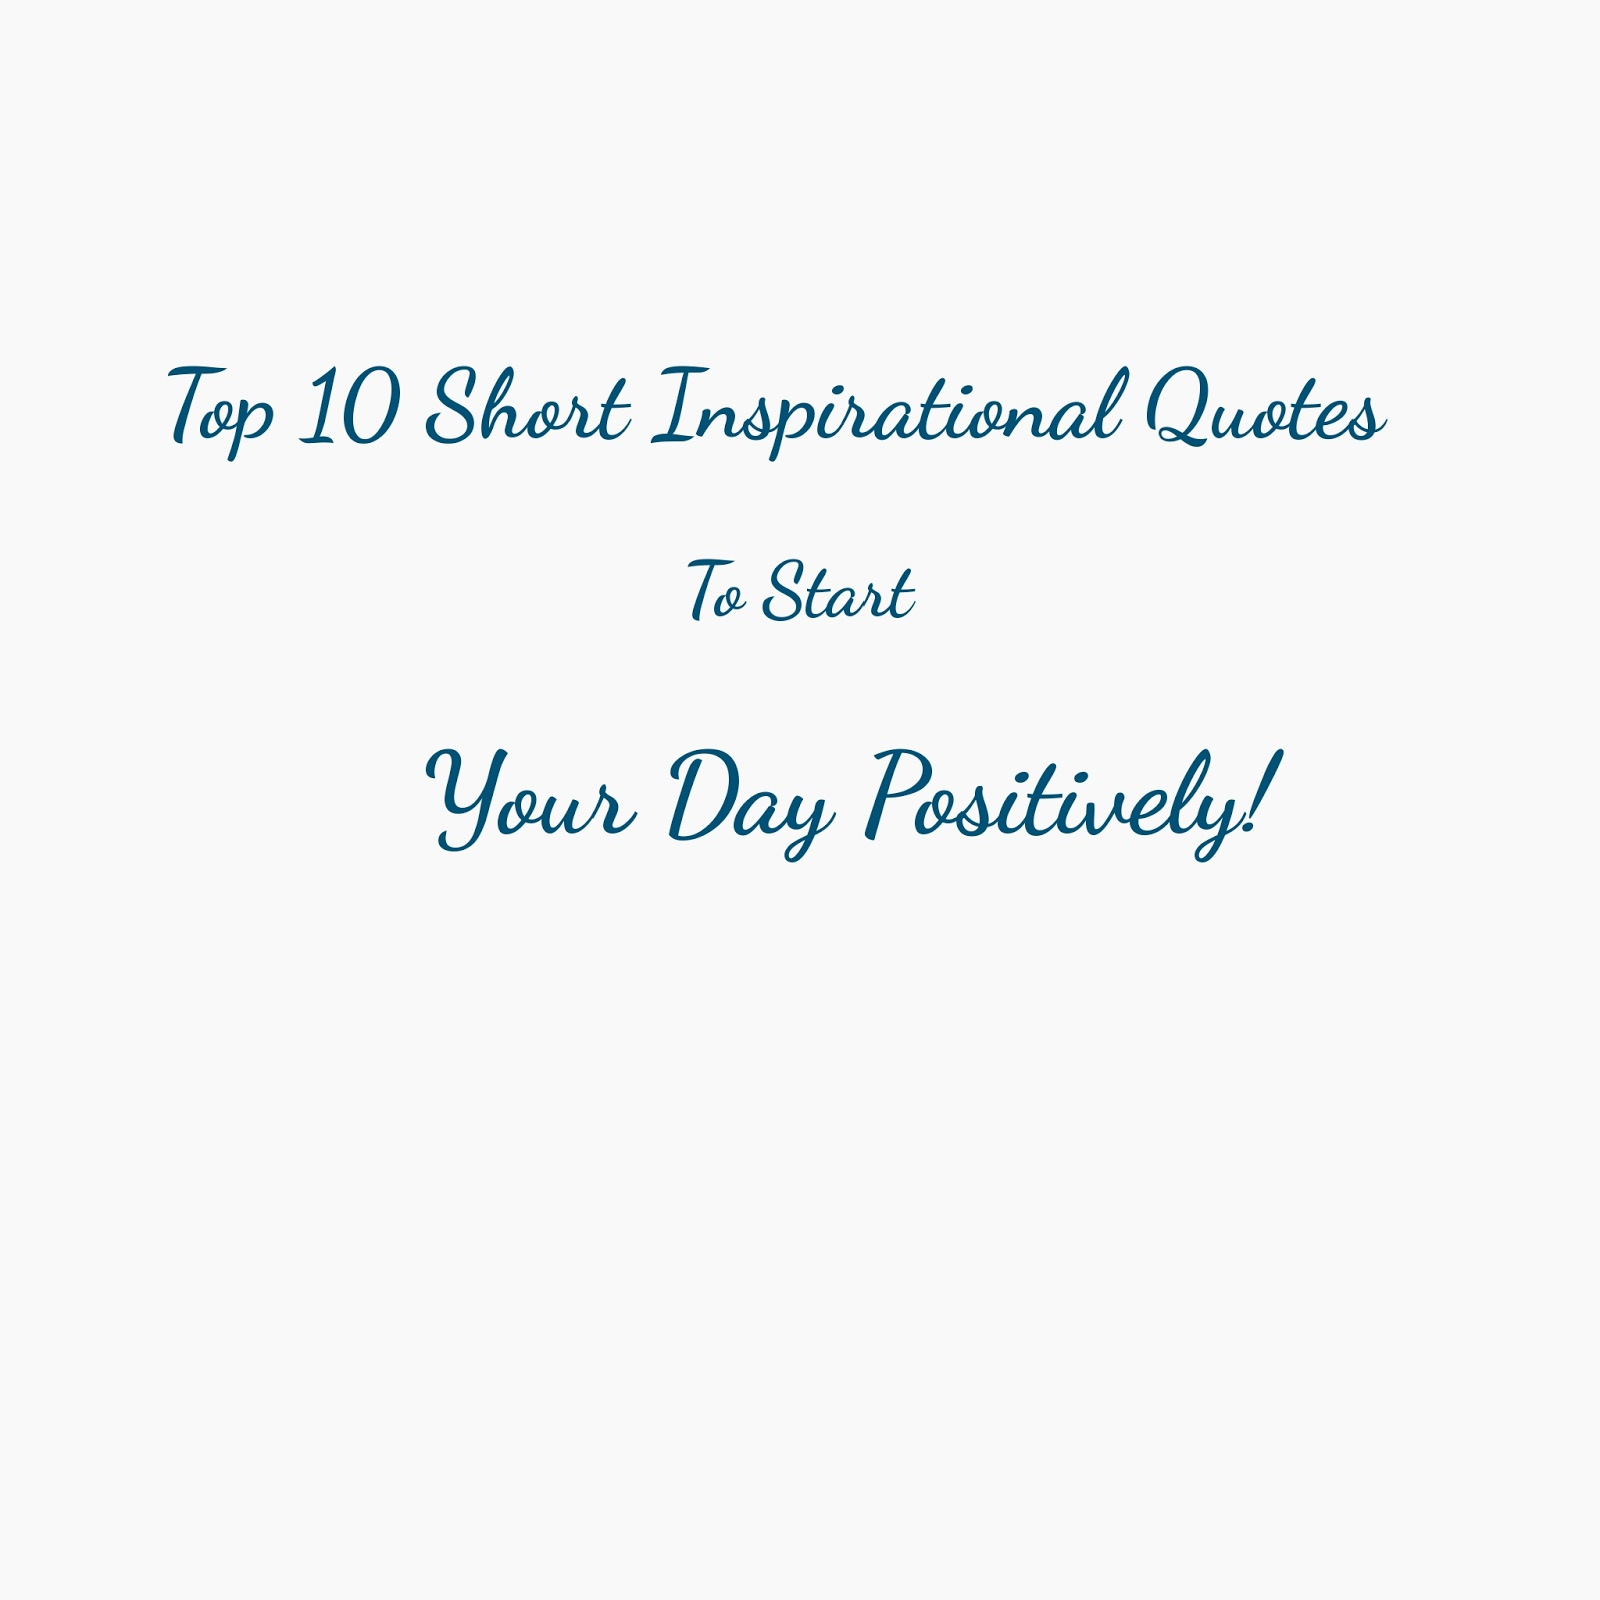 Inspirational Day Quotes: Top 10 Short Inspirational Quotes To Start Your Day